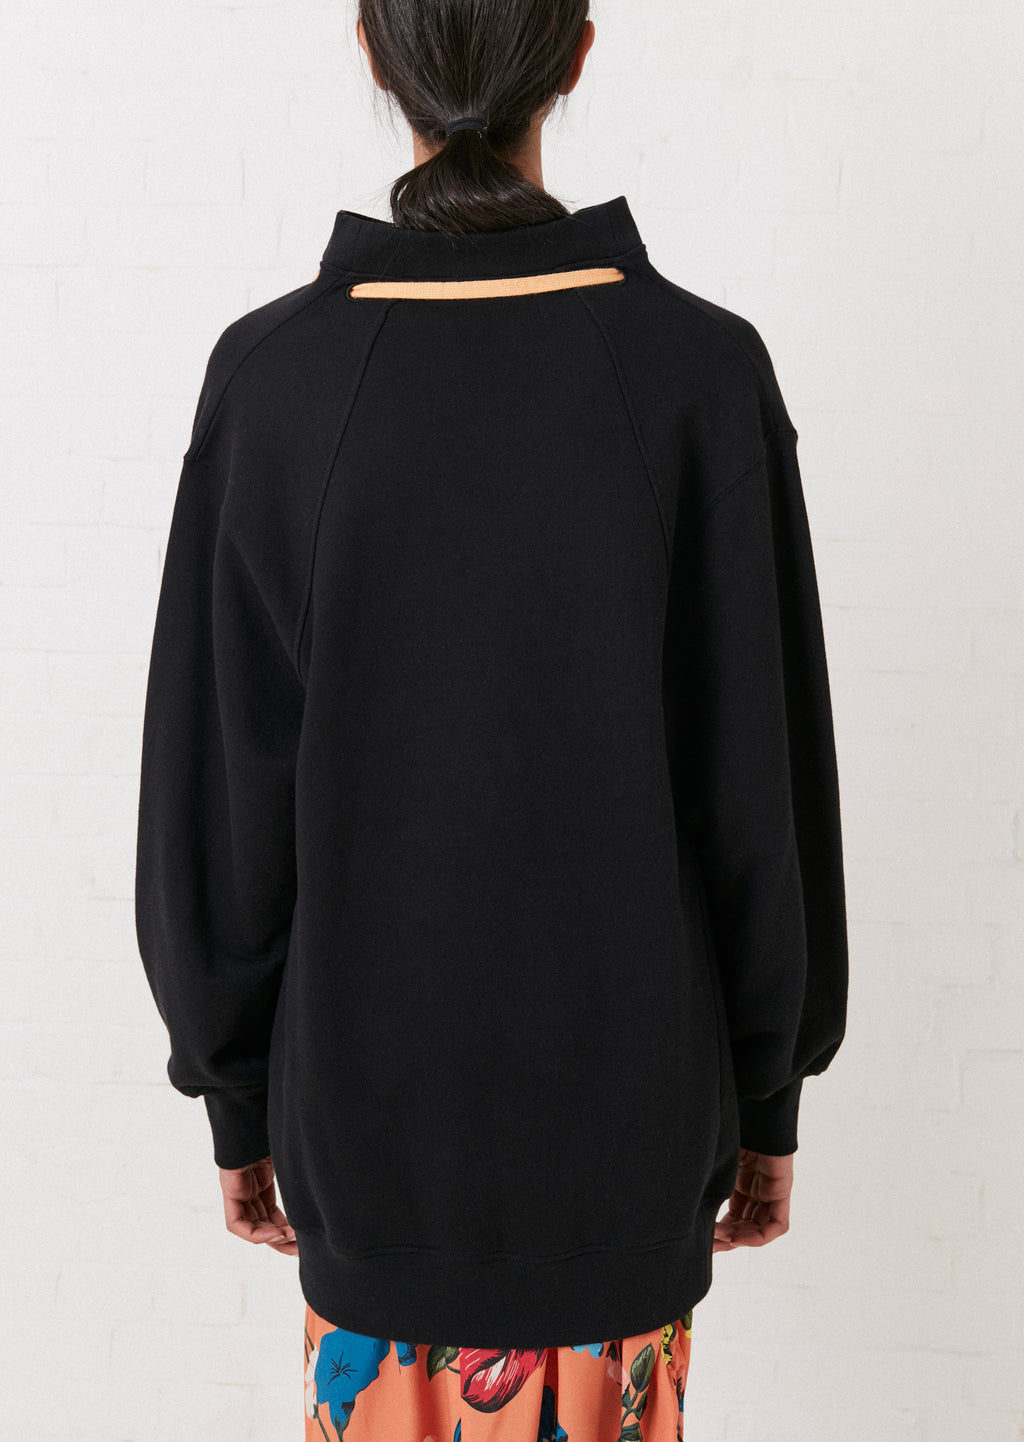 Cassette Oversized 2-Way Sweatshirt By House of Holland